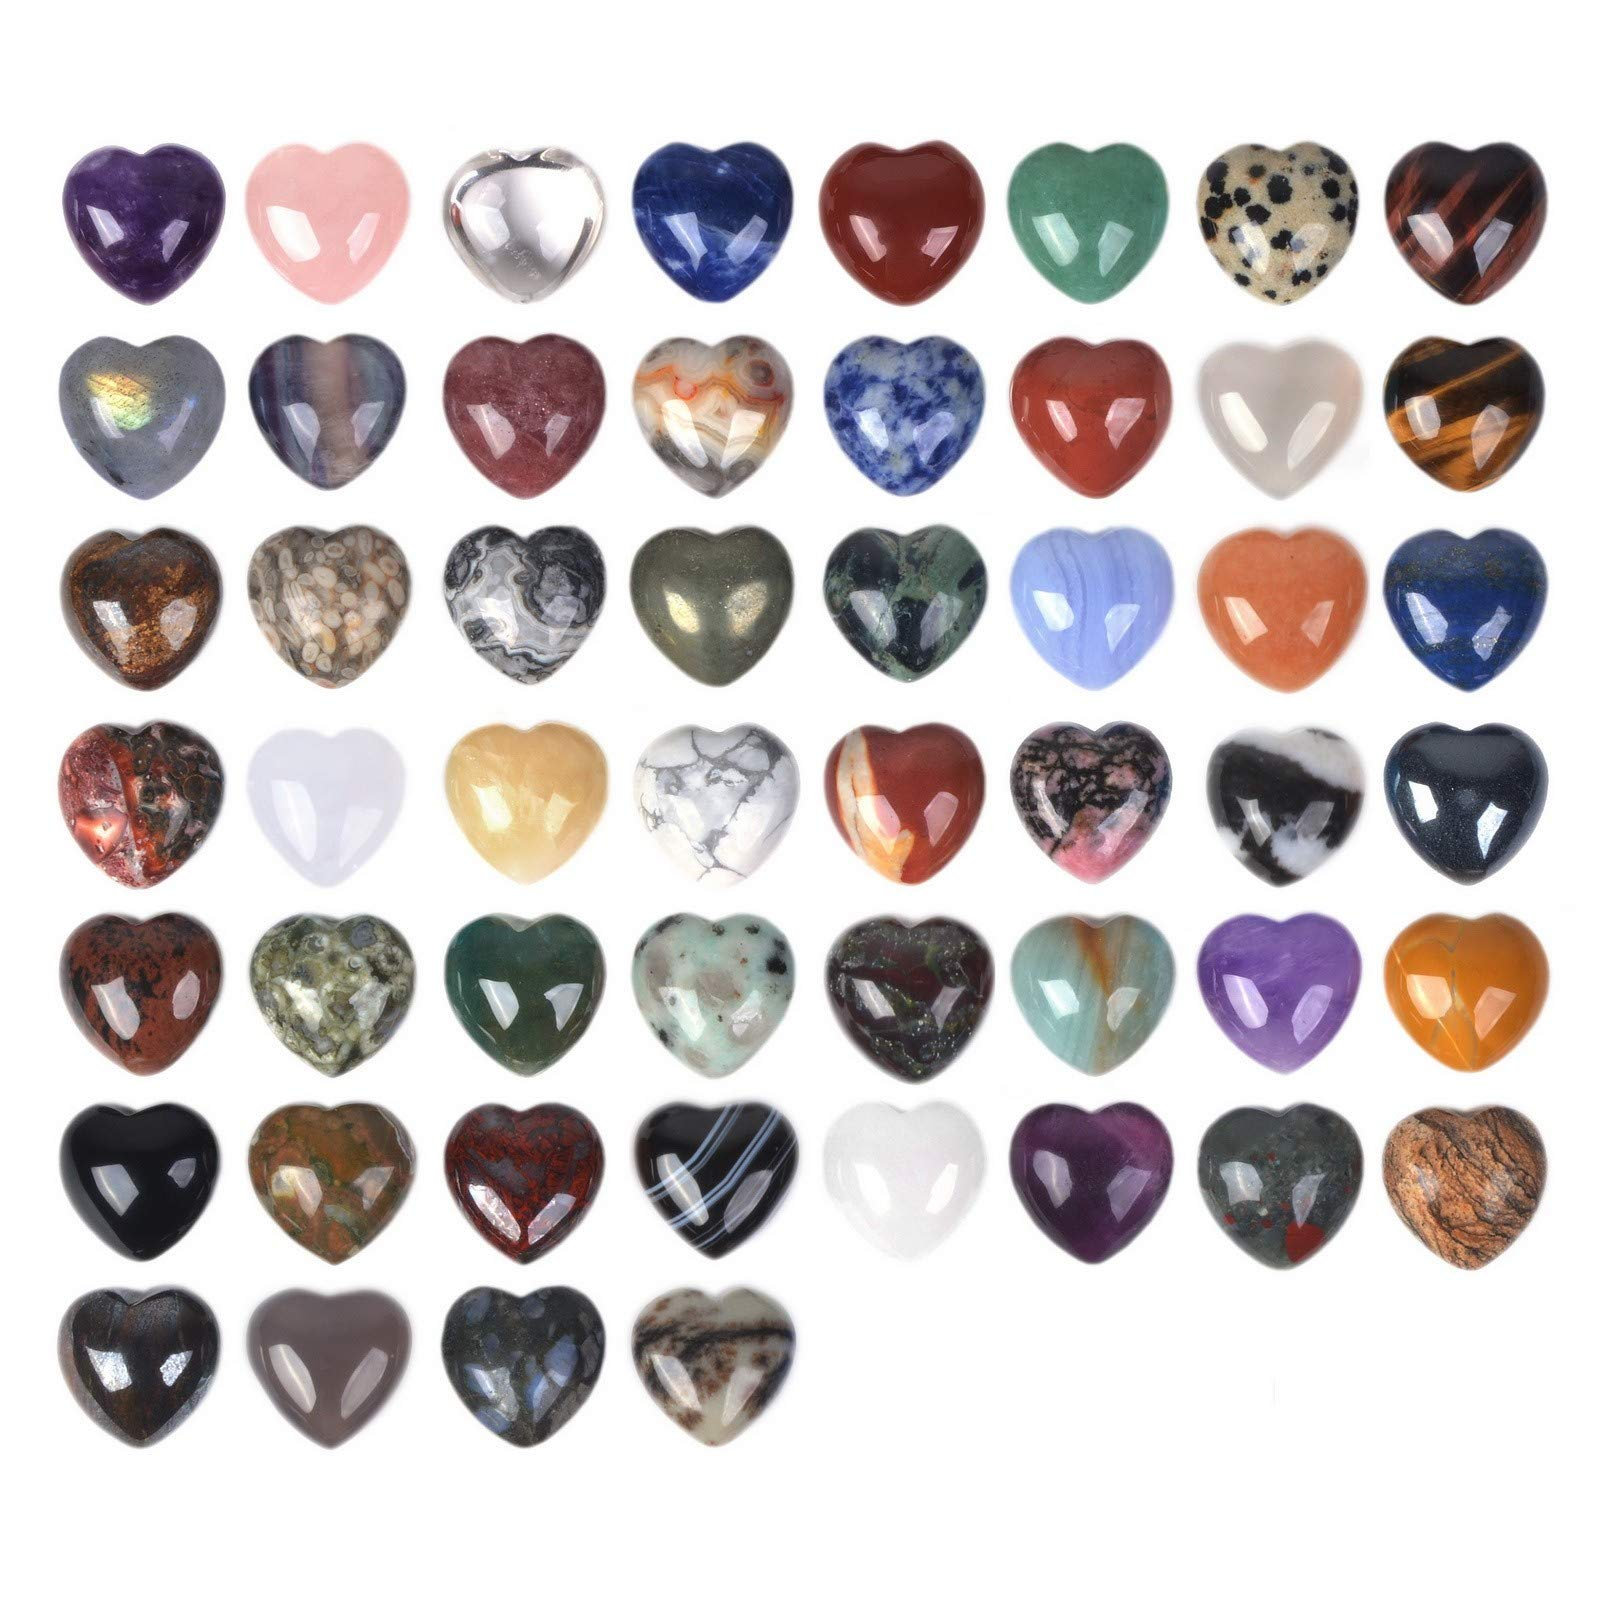 JUST IN STONES All Natural 20mm Mini Puffy Heart Assorted Gemstone Healing Crystal Pocket Stone Rock Collection Box (Pack of 24) by JUST IN STONES